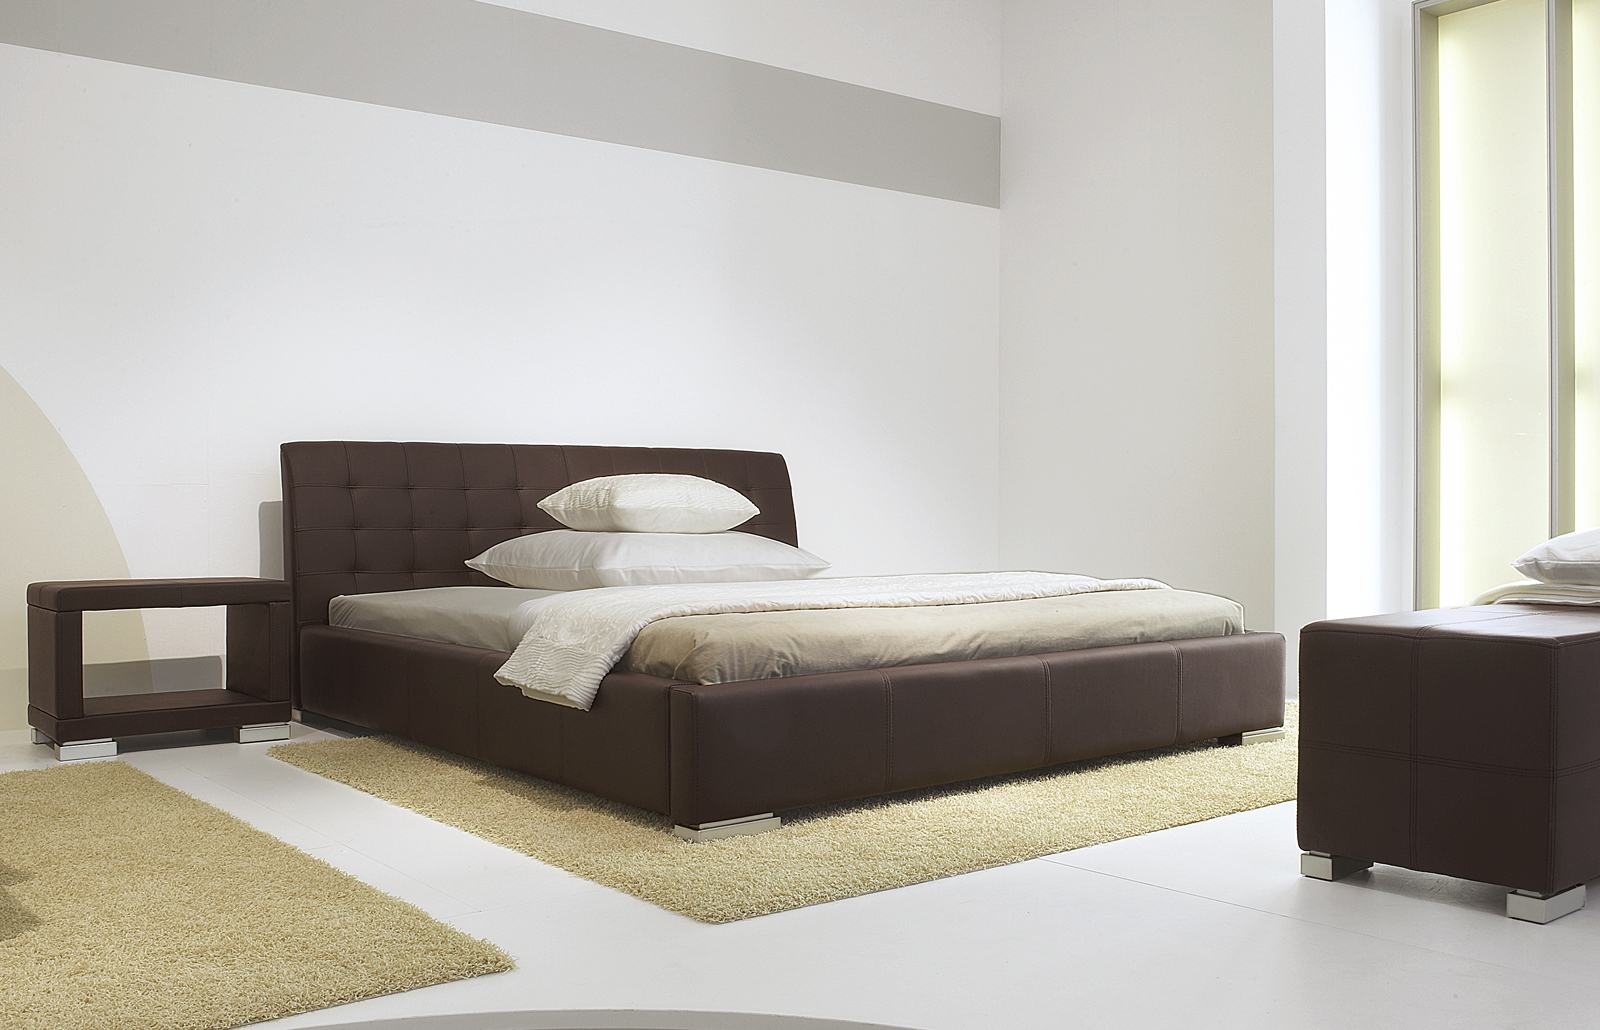 bett dekoration braun alles ber wohndesign und m belideen. Black Bedroom Furniture Sets. Home Design Ideas